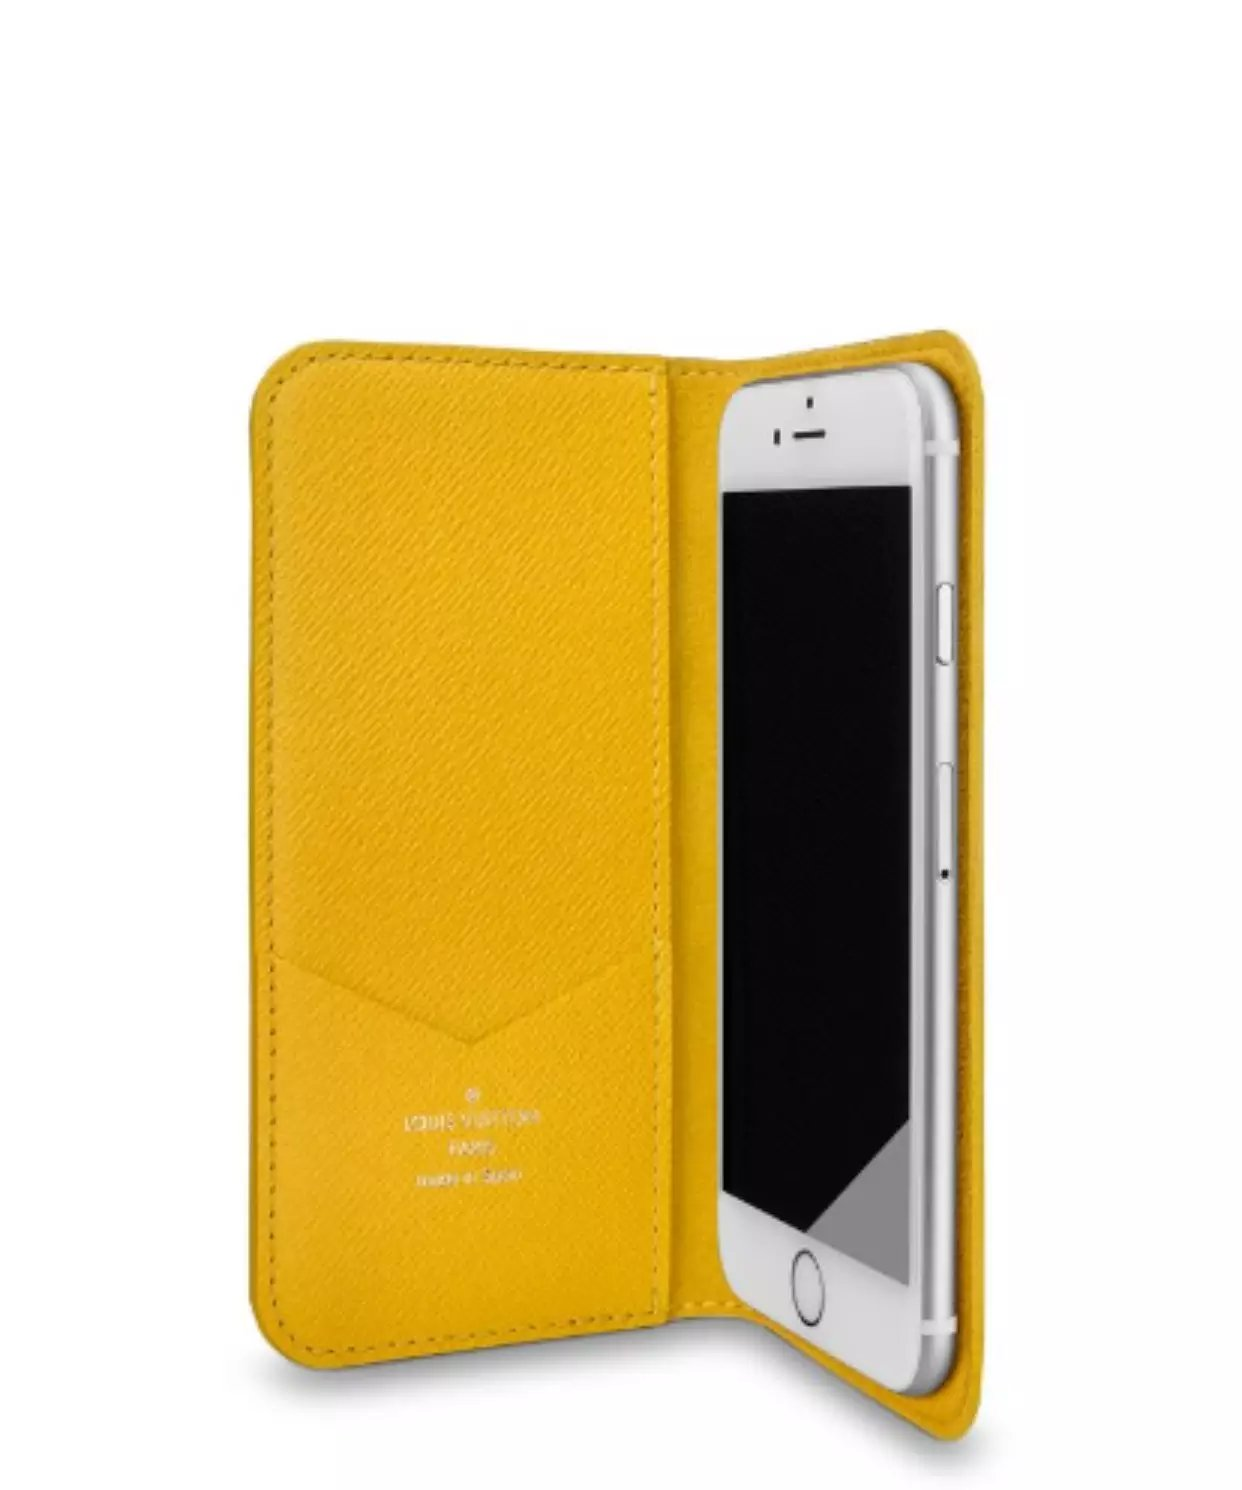 individuelle iphone hülle iphone case selbst gestalten günstig Louis Vuitton iphone6 plus hülle iphone 6 Plus 6 iphone 6 Plus ca6 6lber gestalten iphone 6 Plus lederhülle schwarz handy 6lber designen iphone display apple zubehör shop